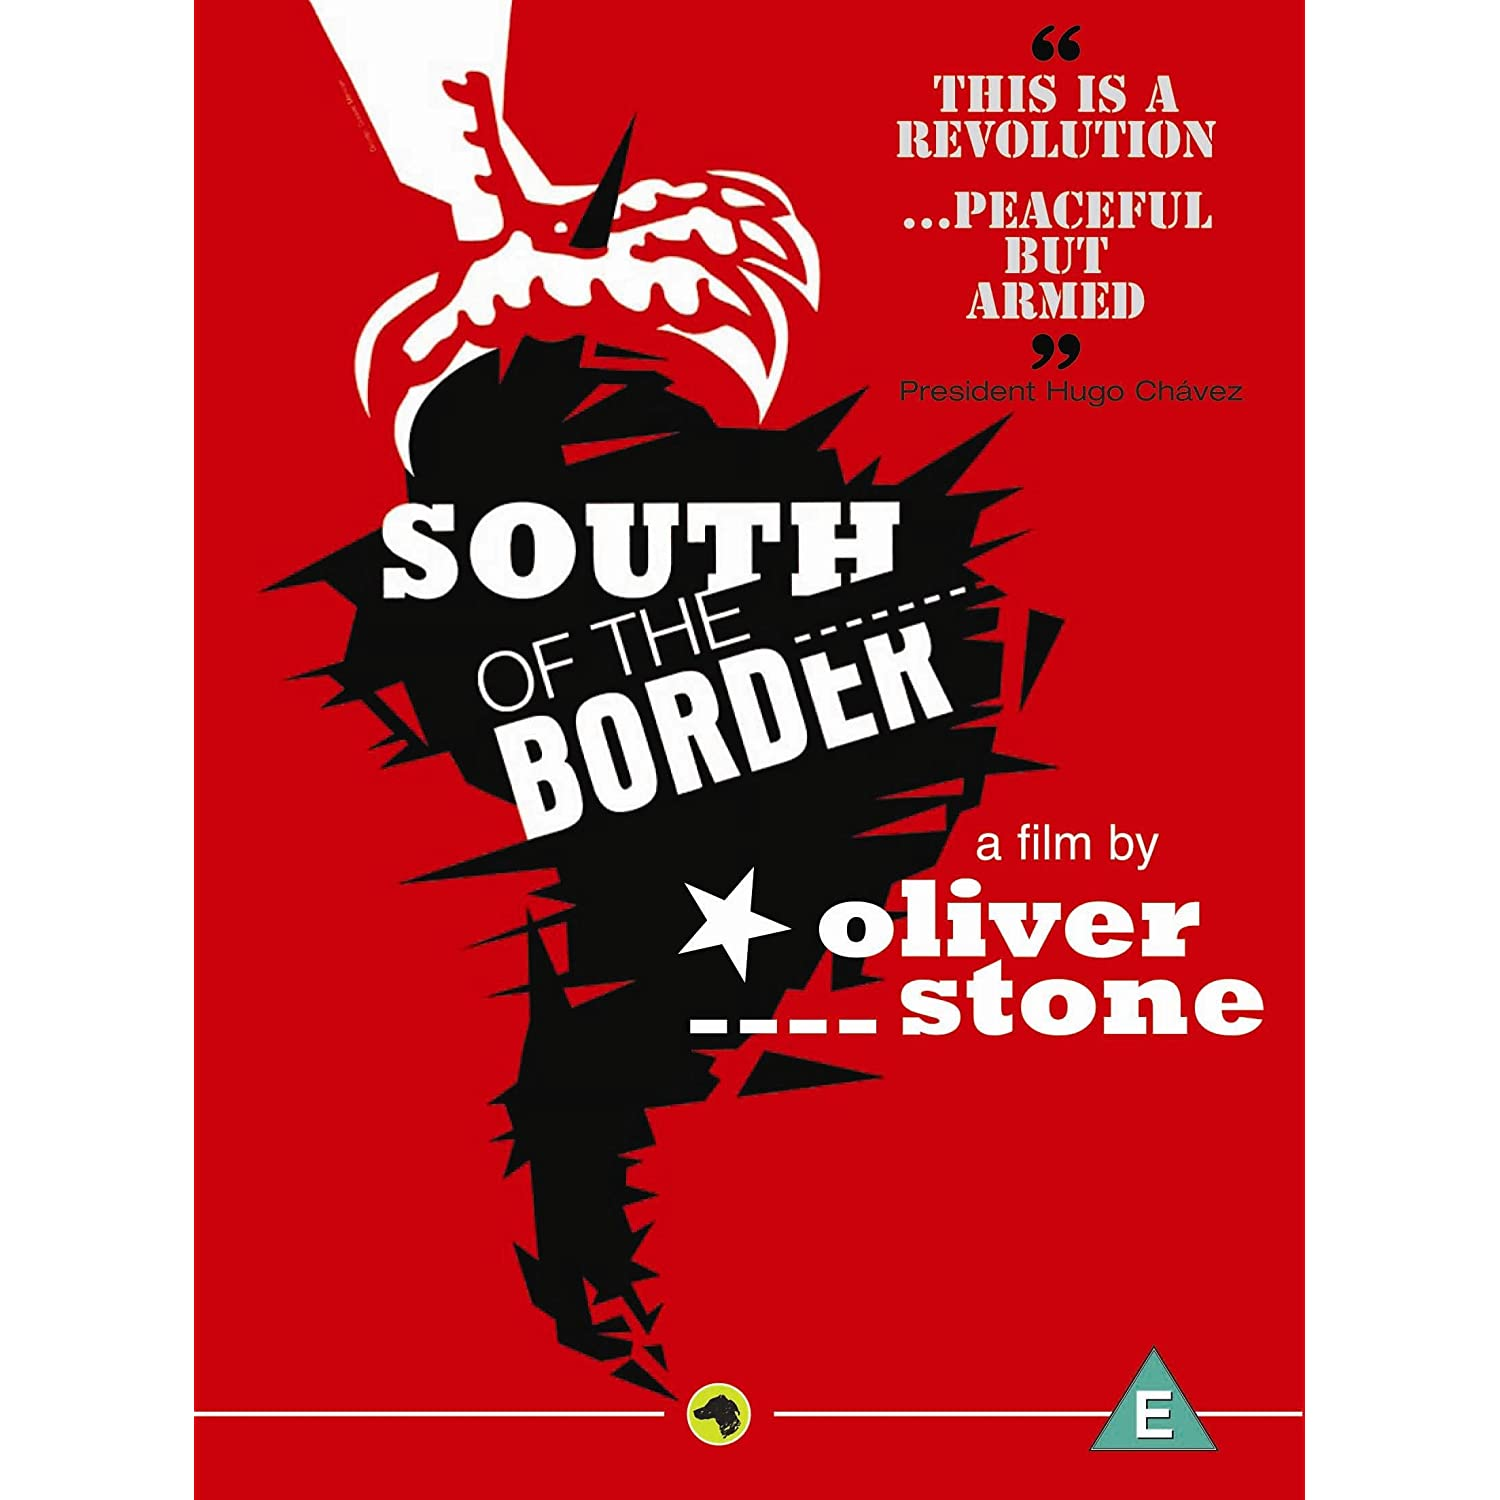 film analysis south of the border Film books music arts digital  jordan send aid to syrian refugees across closed border  syrian forces press offensive in south as rebels consider truce.